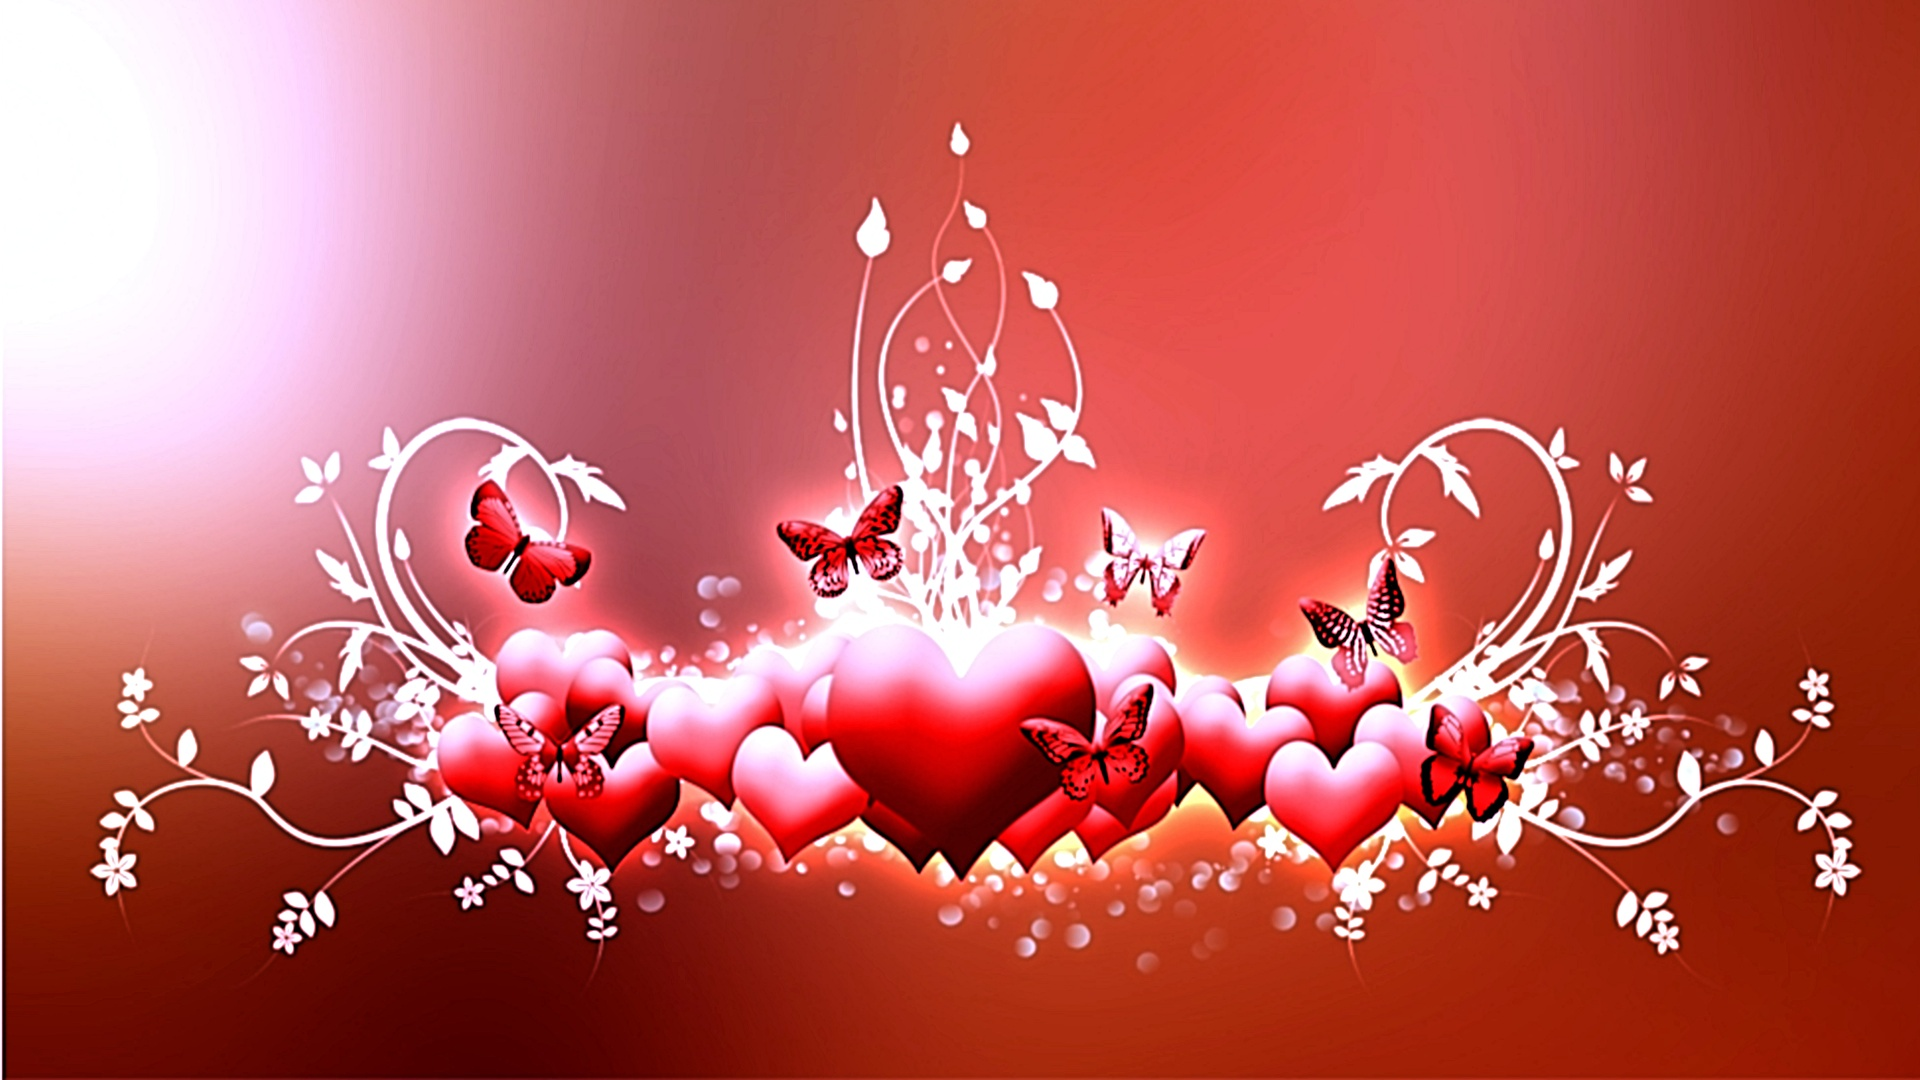 Abstract Red Love Hearts id 20138 BUZZERG 1920x1080